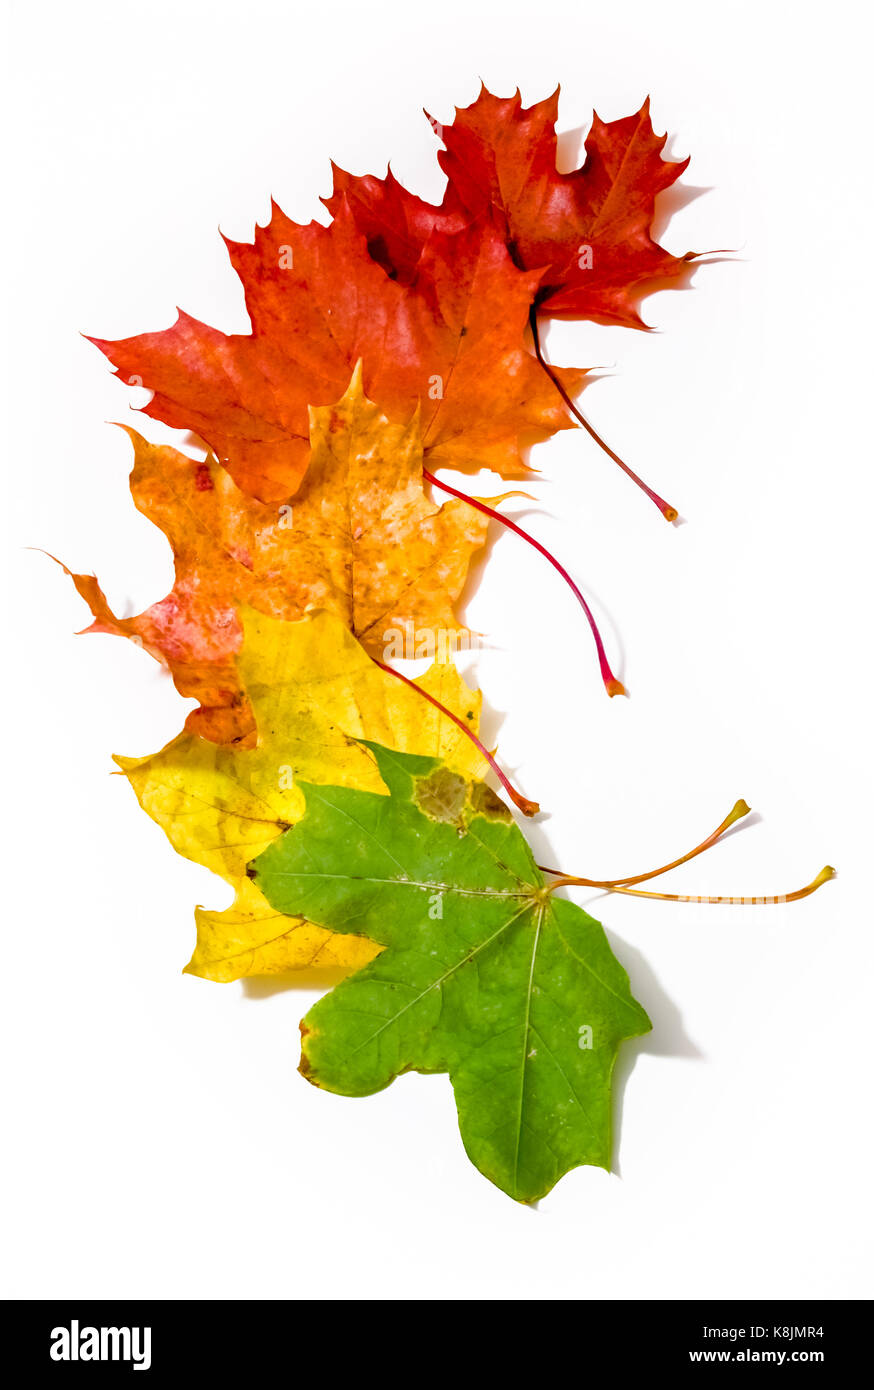 Maple Tree Leaves Of Different Colors Laid Out Vertically Stock